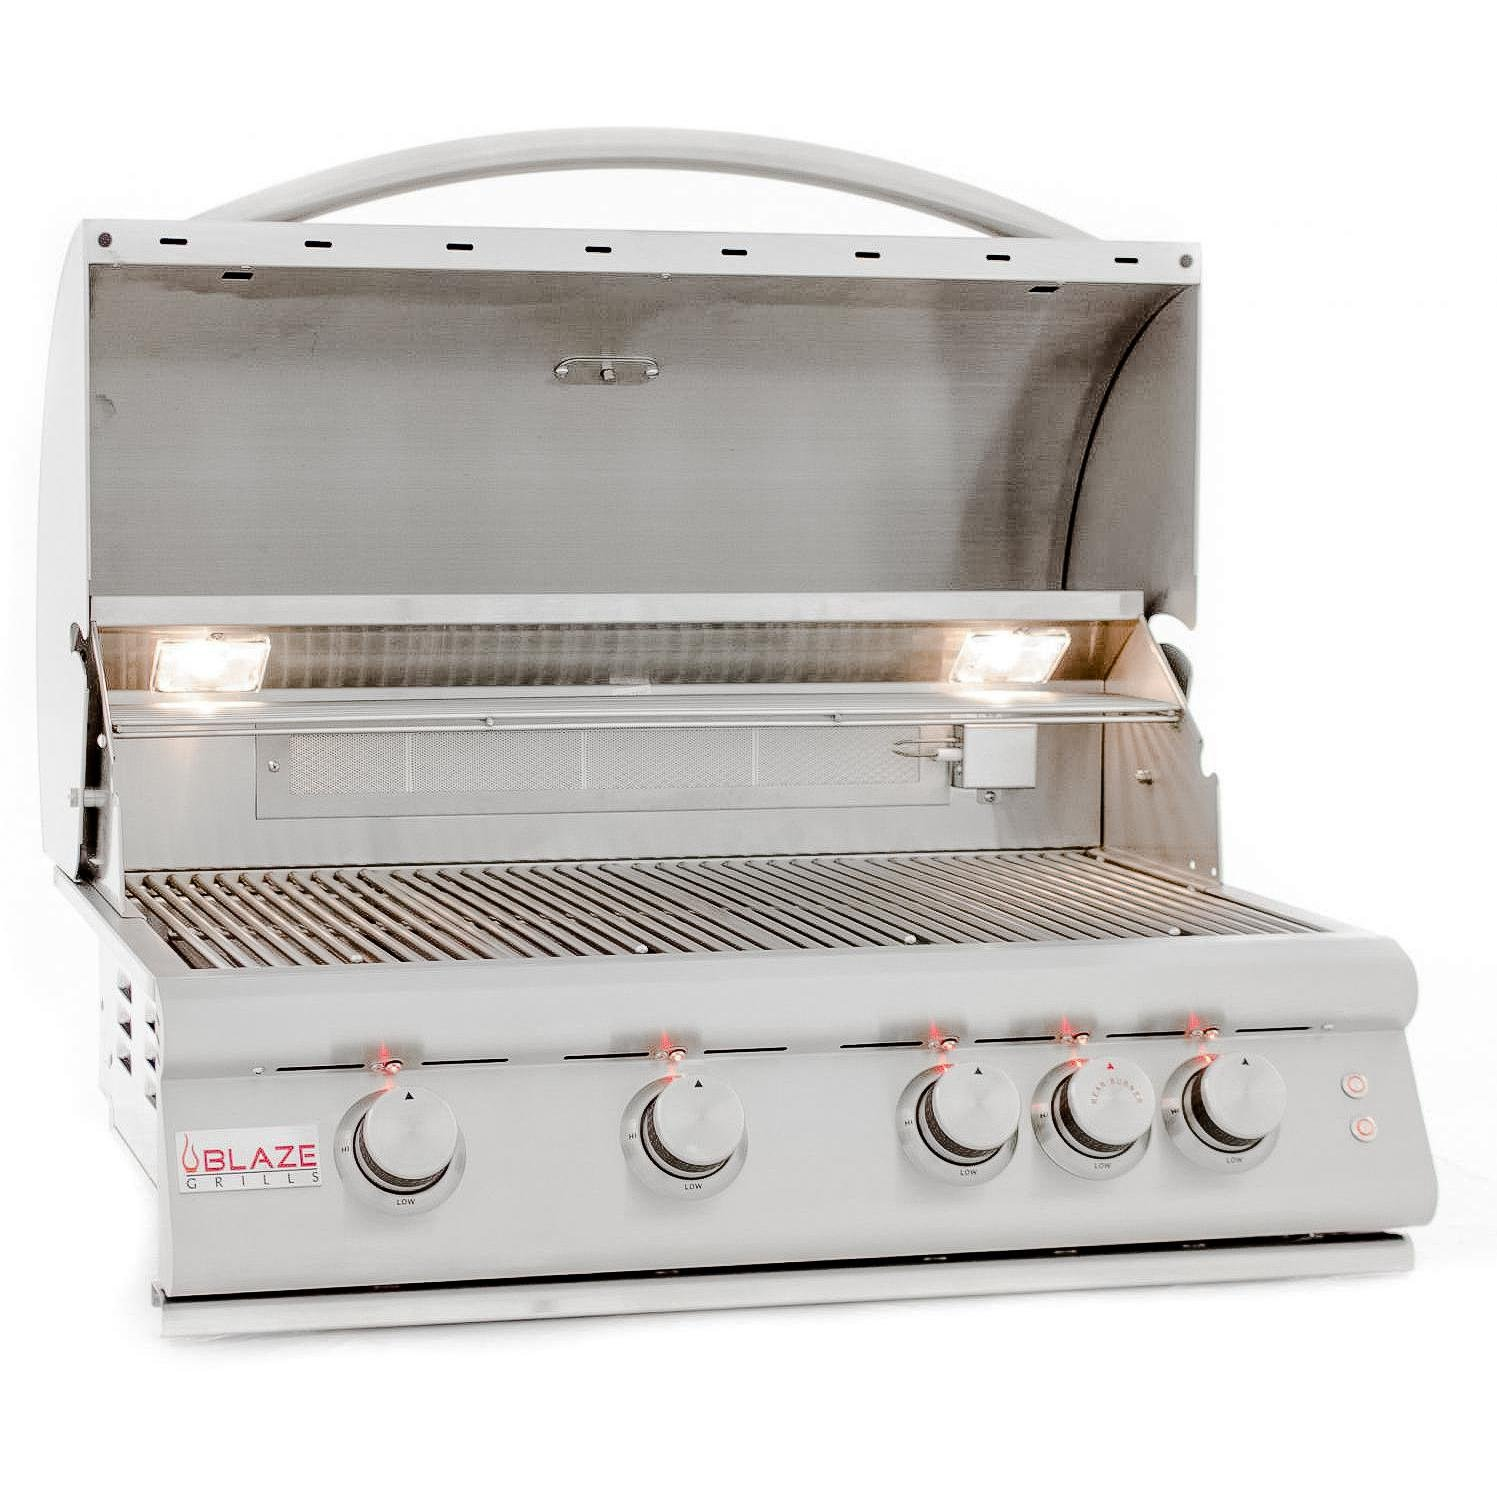 Blaze Lte 32-inch 4-burner Built-in Natural Gas Grill With Rear Infrared Burner & Grill Lights - Blz-4lte2-ng by Blaze Outdoor Products